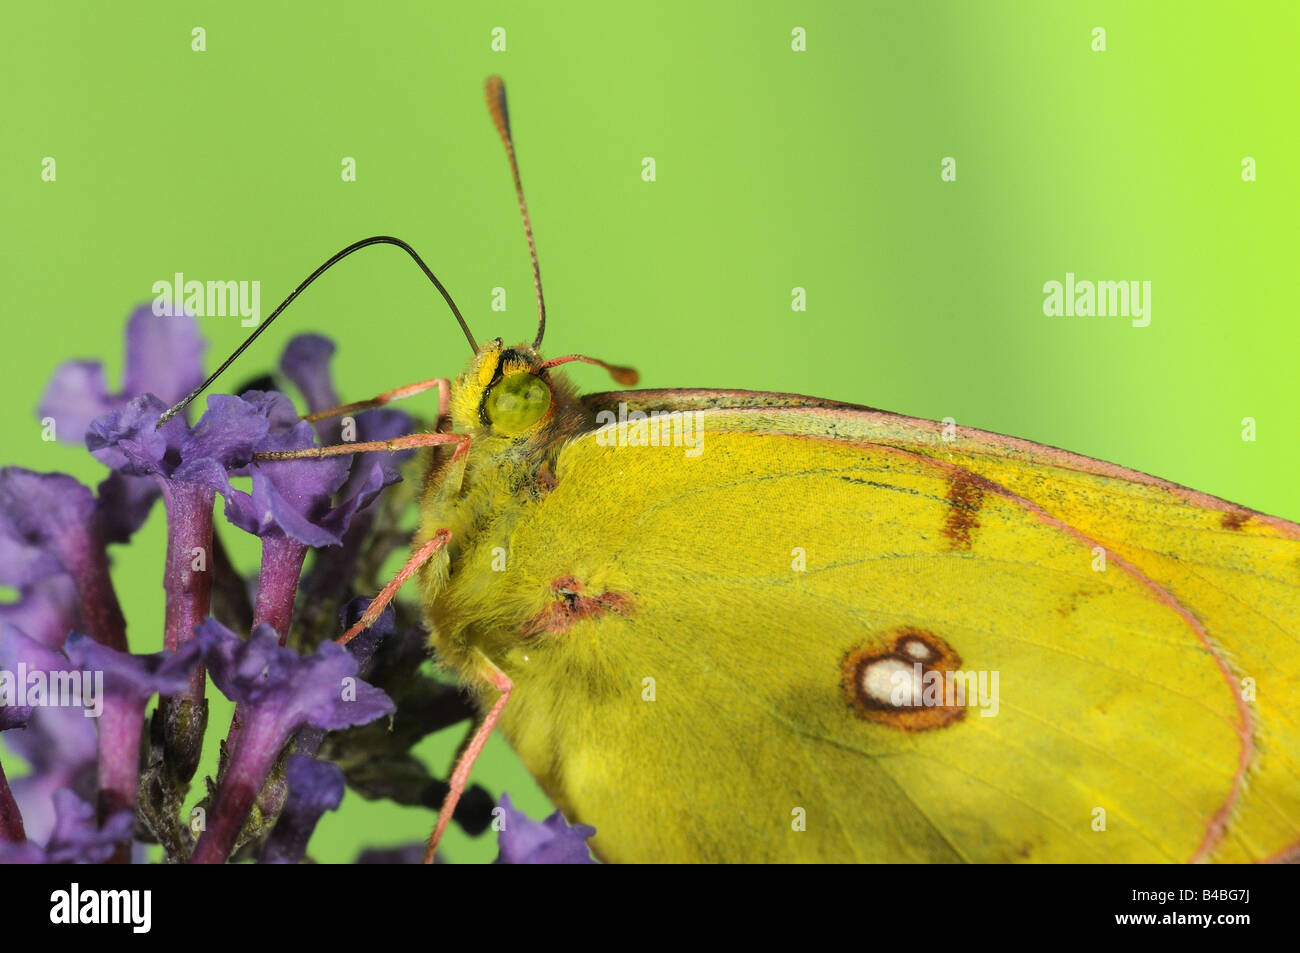 Clouded Yellow Butterfly Colias croceus feeding on Buddleia flowers tongue extended - Stock Image